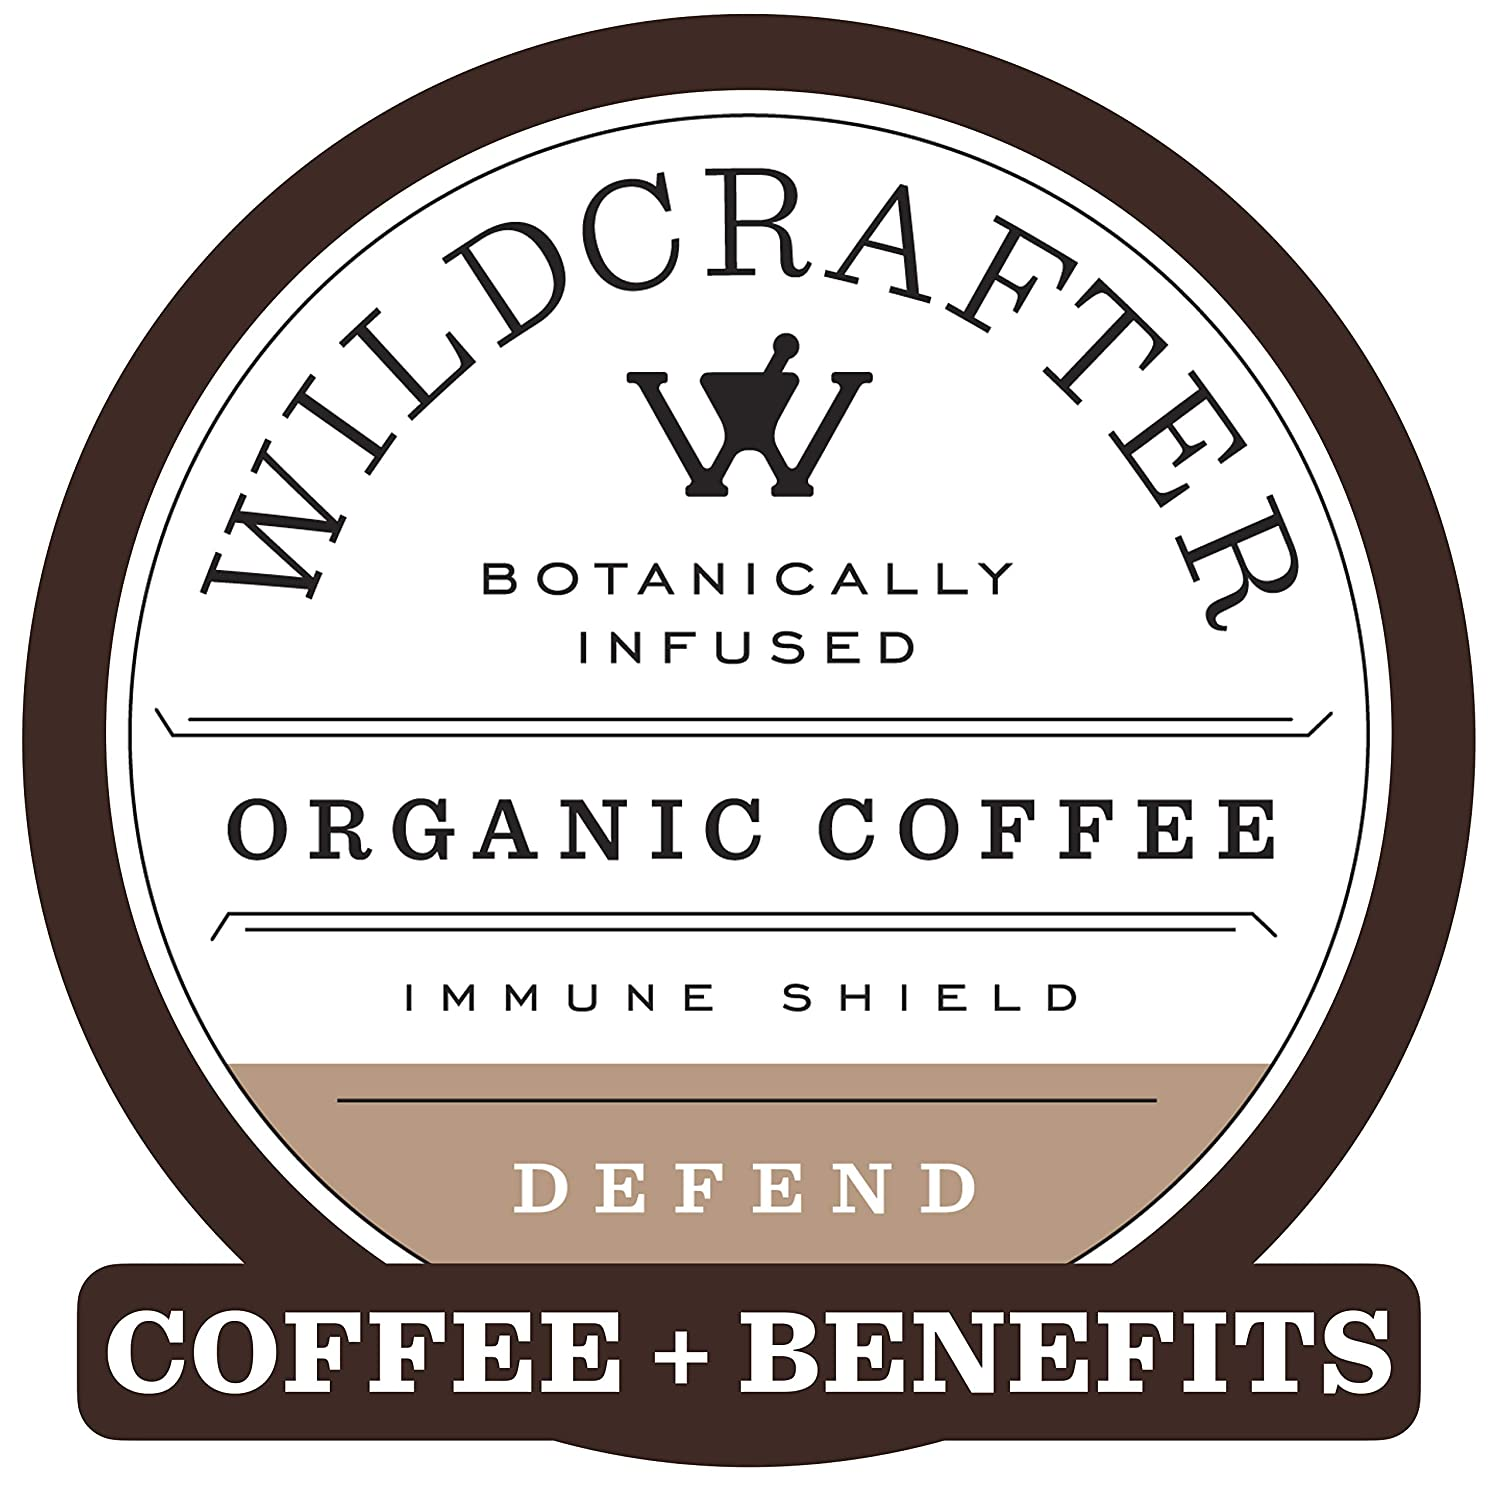 Wildcrafter Botanicals Organic Coffee K Cups - Herbal Immune Booster Infused with Elderberry, Astragalus Root & Reishi Mushroom Blend. 12 Dark Roast Pods - Compatible with K-Cup Brewers & Keurig 2.0